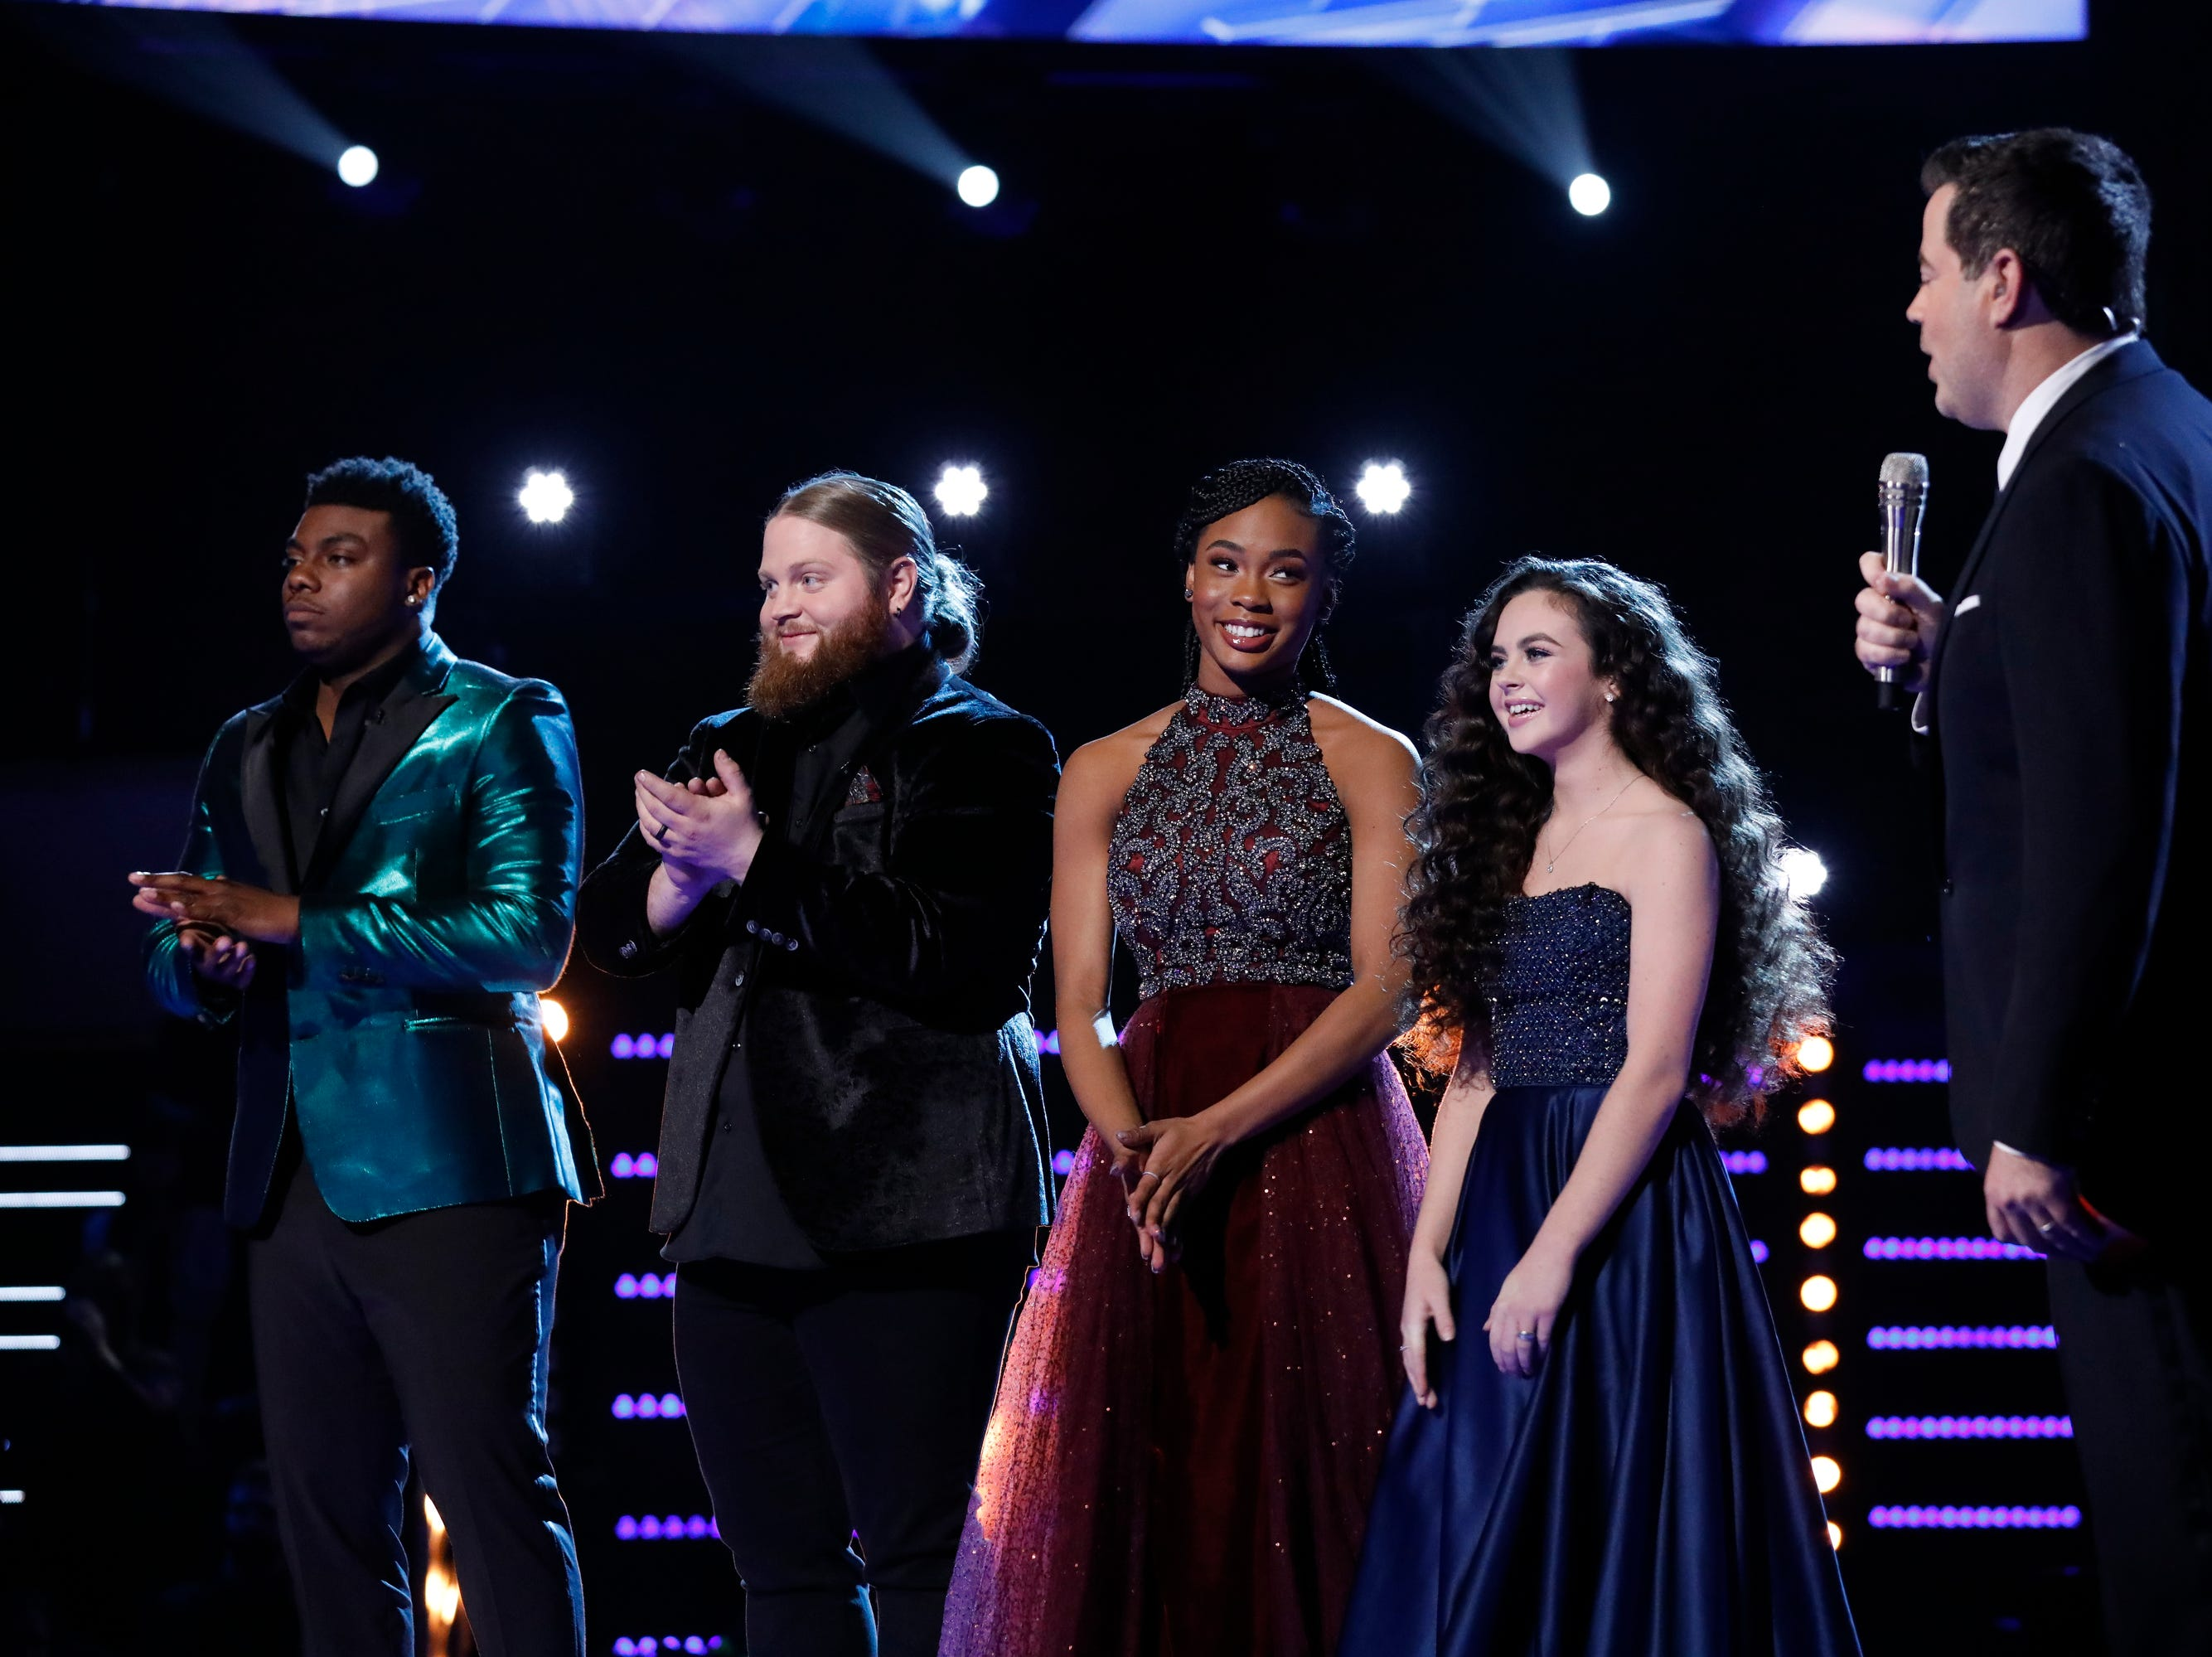 """Tension mounted Tuesday as Season 15 finalists Kirk Jay, left, Chris Kroeze, Kennedy Homes and Chevel Shepherd waited for host Carson Daly to announce the winner of """"The Voice."""""""